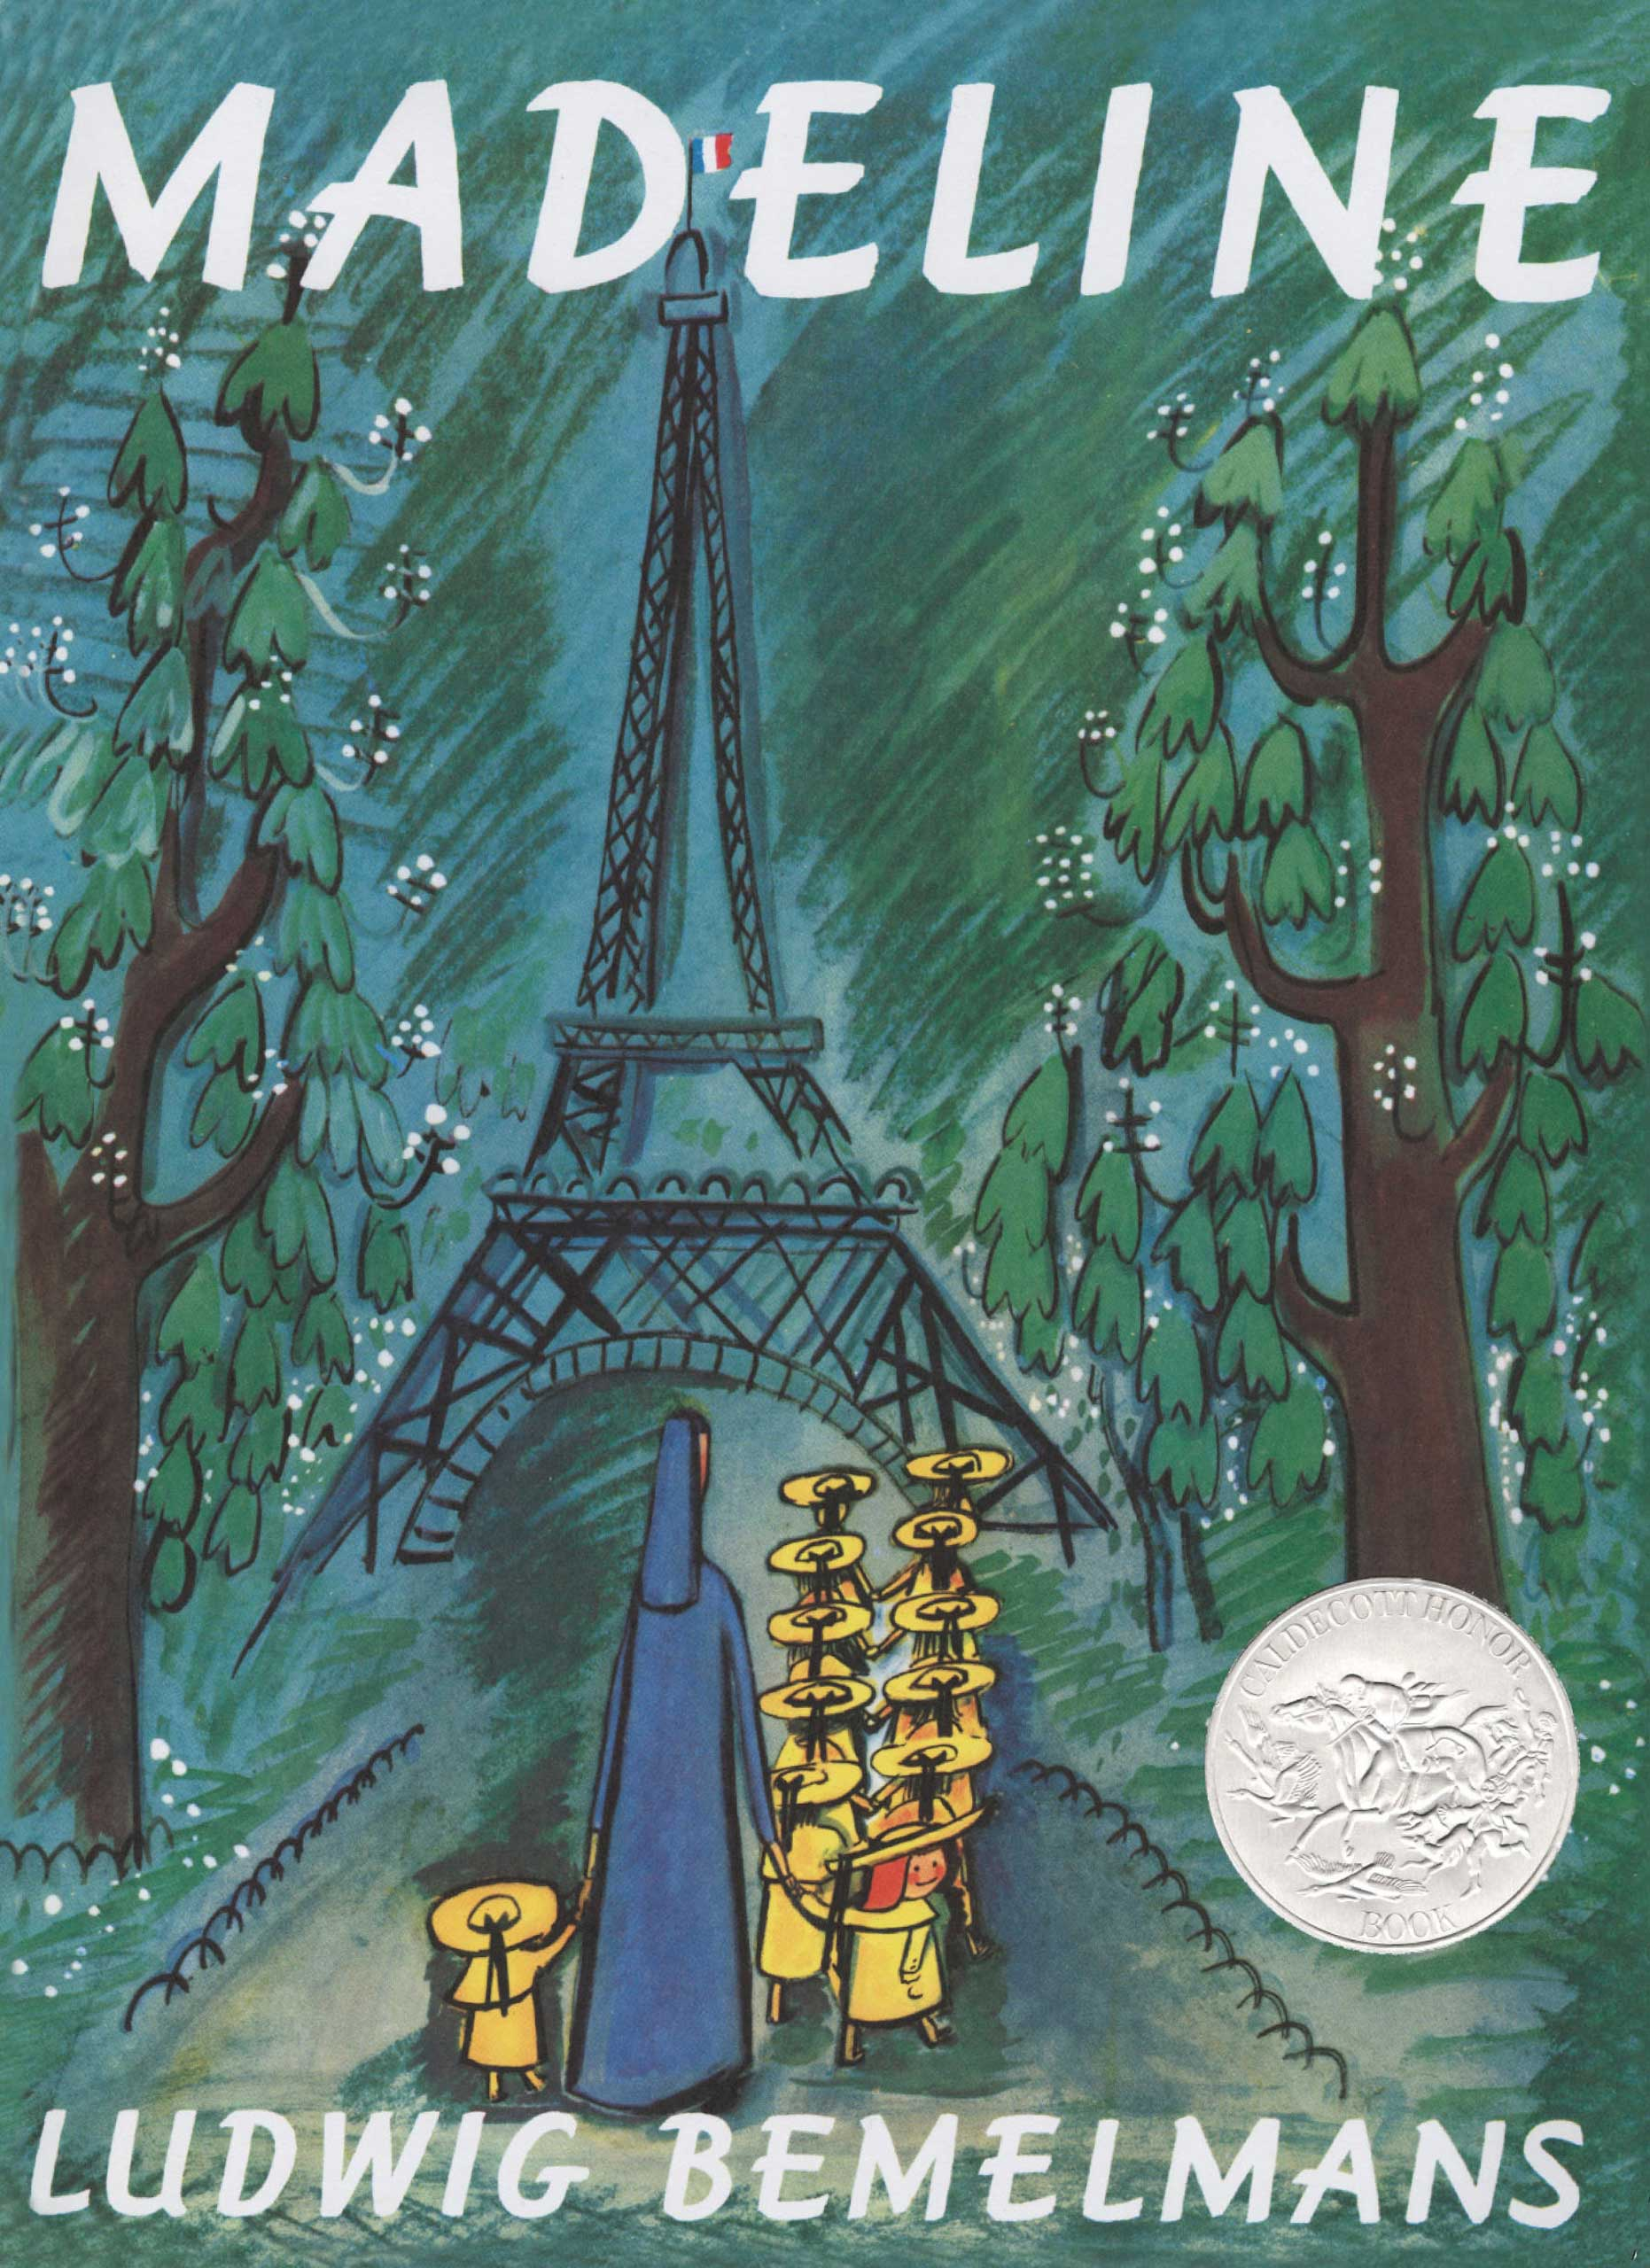 Madeline (series), by Ludwig Bemelmans.                                                                                                                            A spunky French girl navigates boarding school and the removal of her appendix with confidence and poise.                                                                                                                            Buy now: Madeline (series)